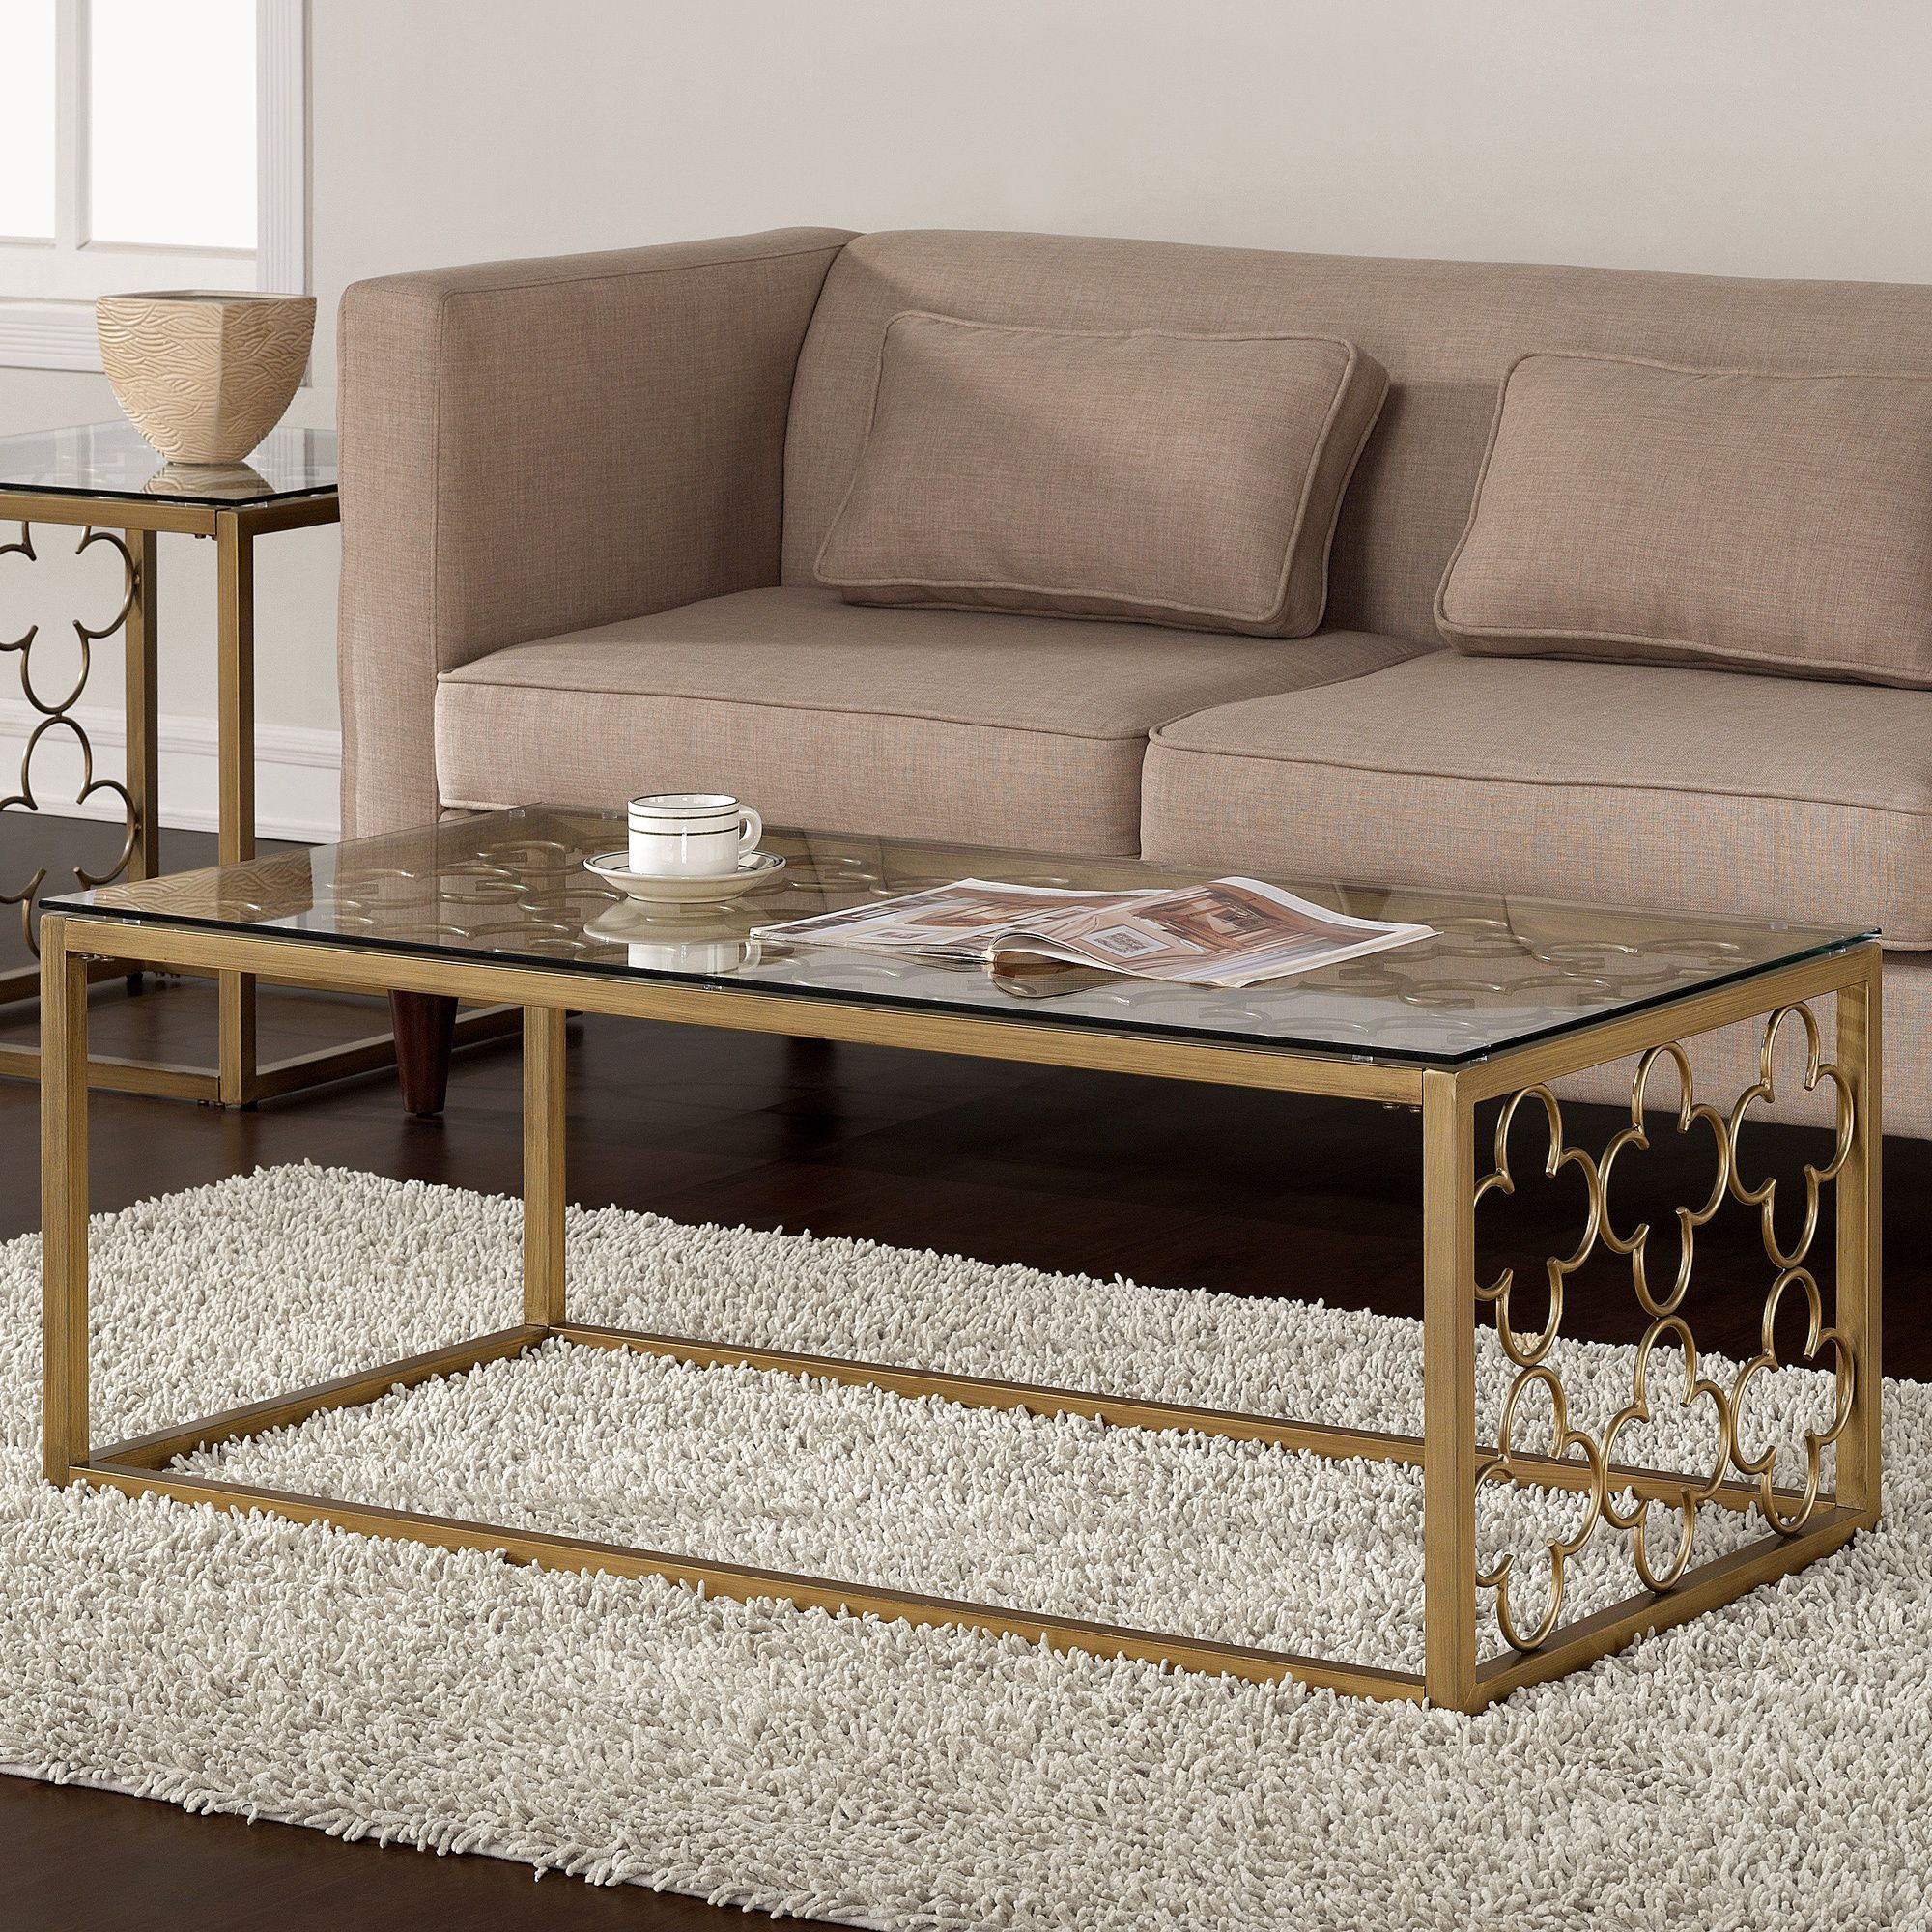 Glass And Steel Coffee Tables Quatrefoil Goldtone Metal And Glass Coffee Table By I Love